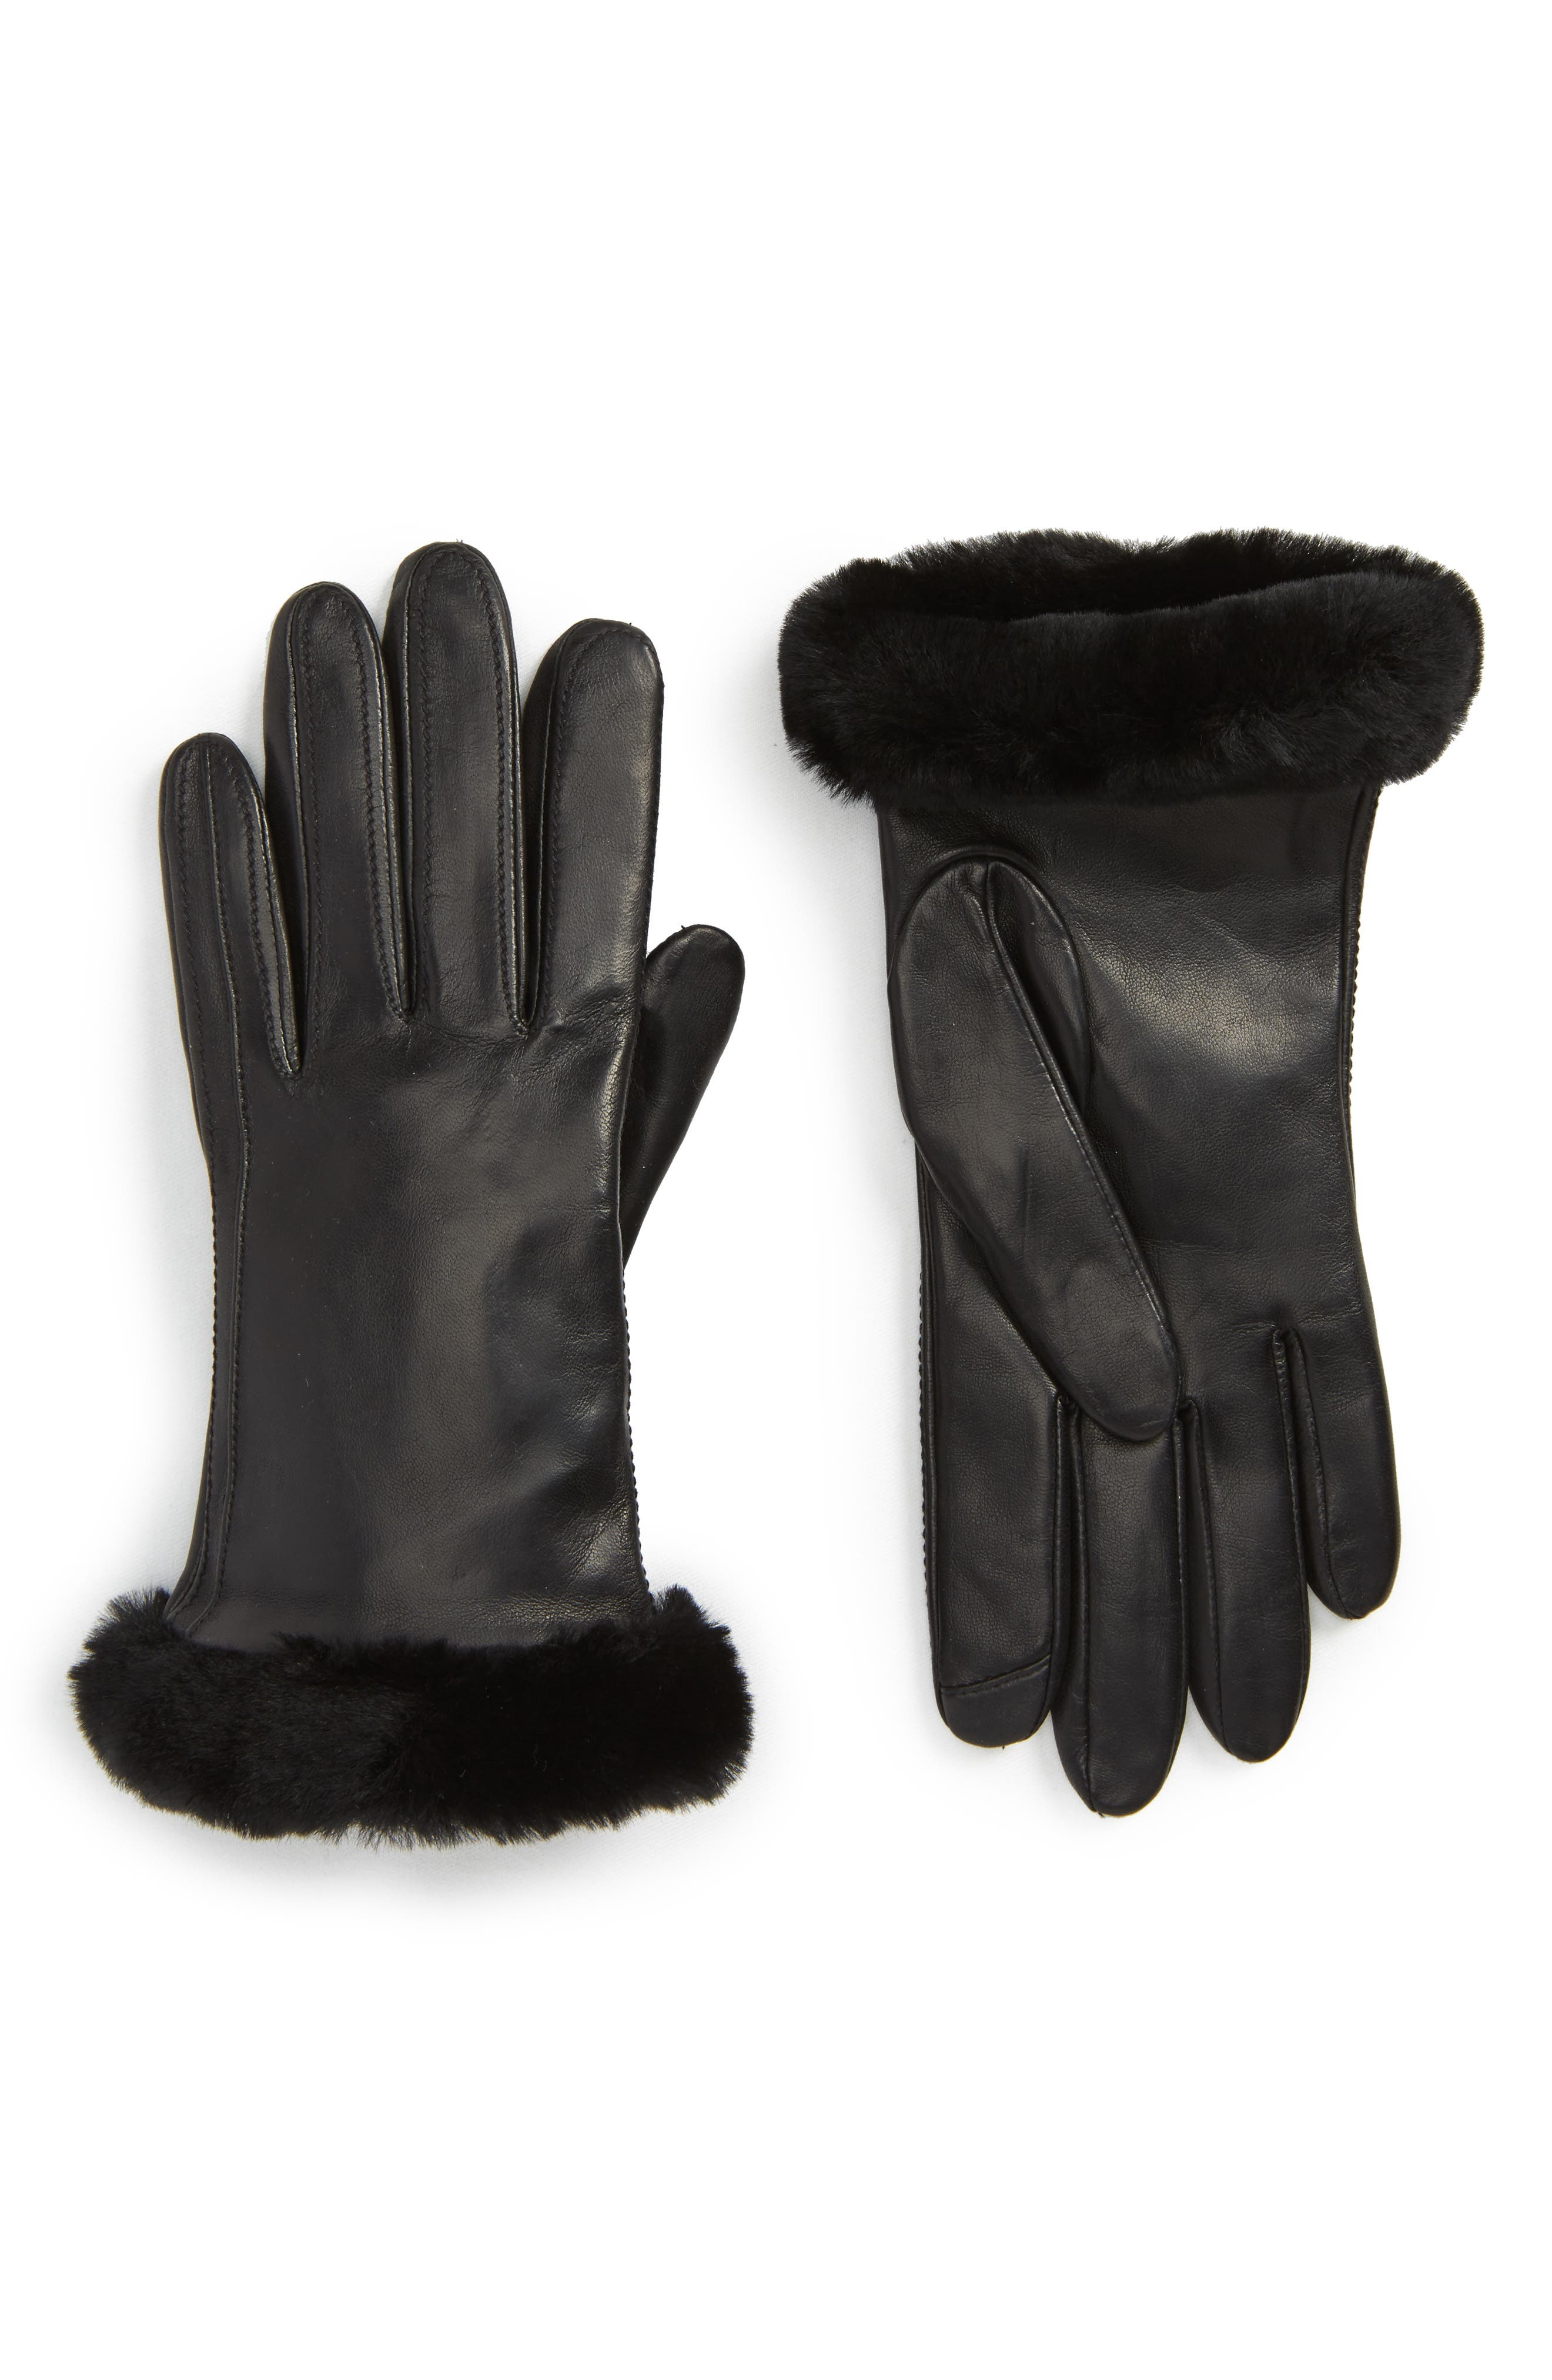 UGG<sup>®</sup> Classic Leather Tech Gloves with Genuine Shearling Trim,                         Main,                         color, Black